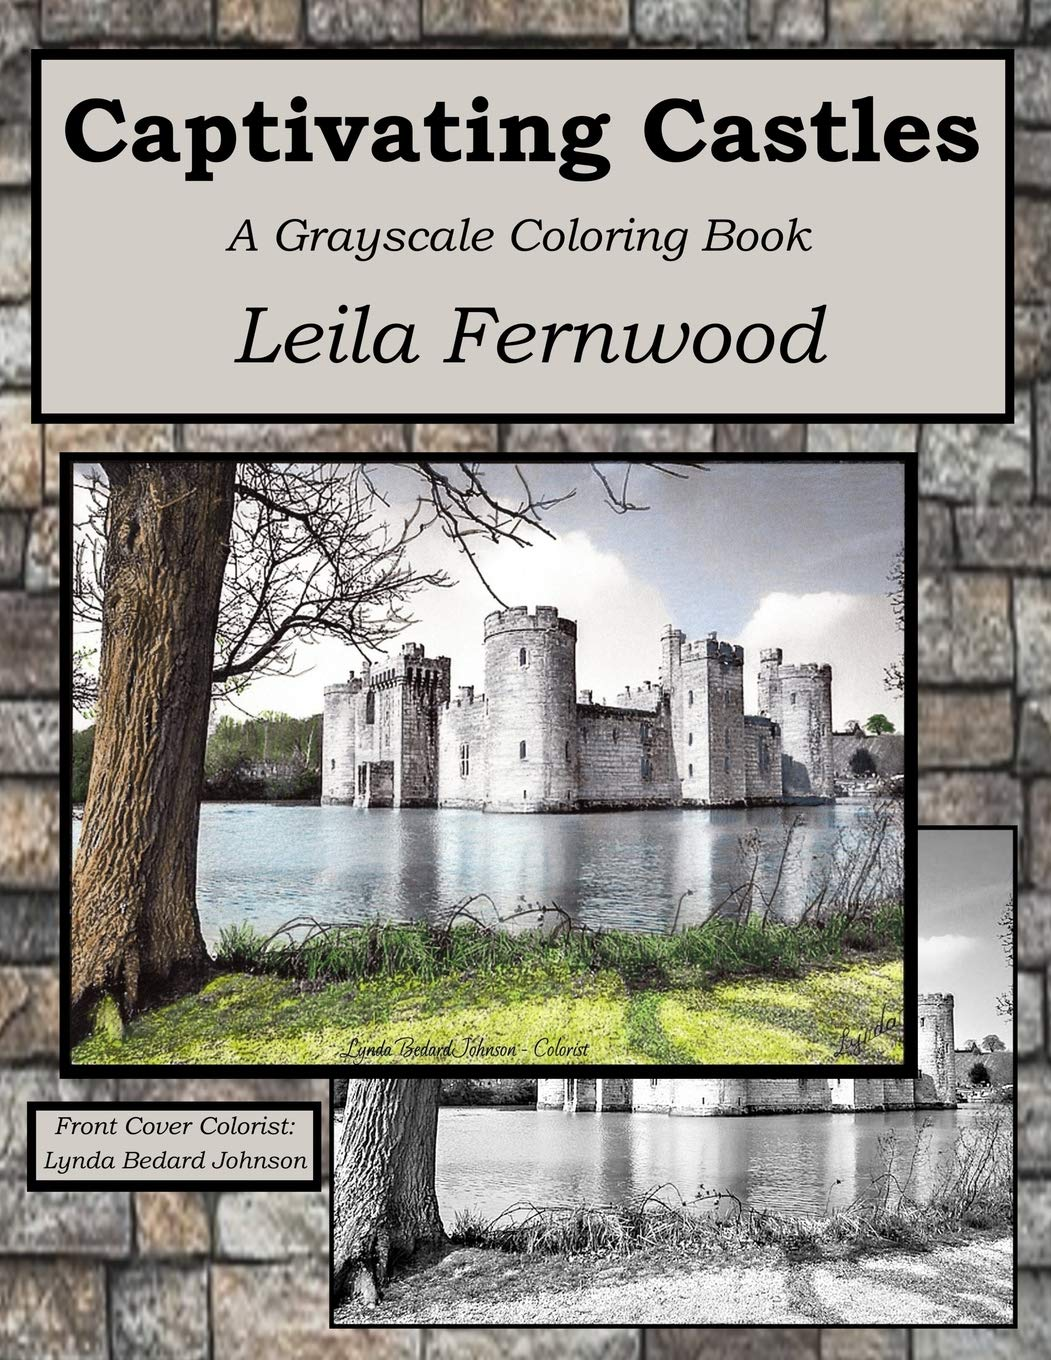 Captivating Castles Grayscale Coloring Book product image